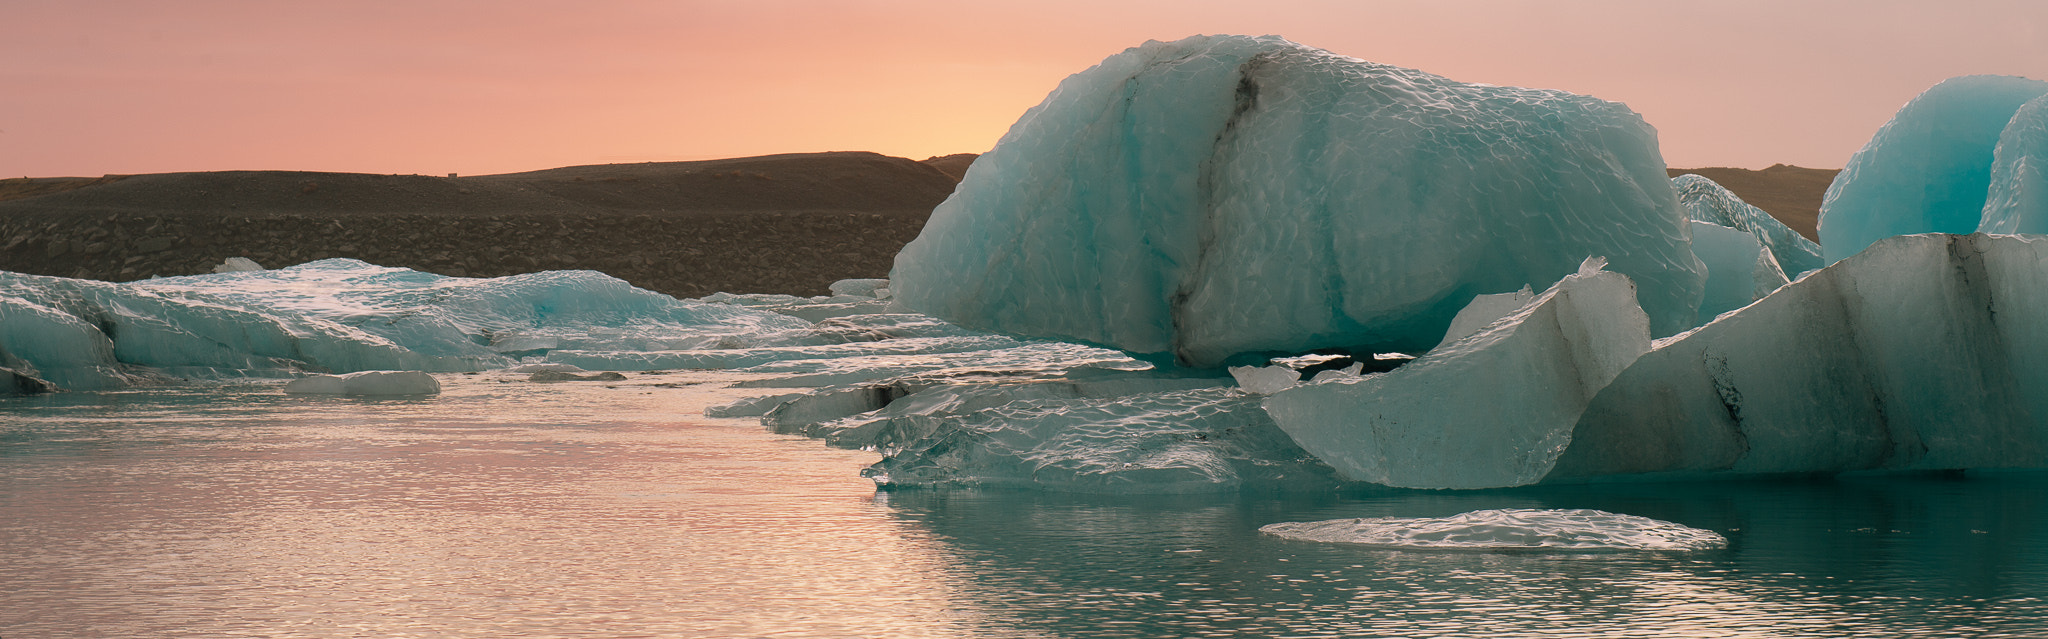 Photograph Floating Ice at Sunset by Kim C on 500px